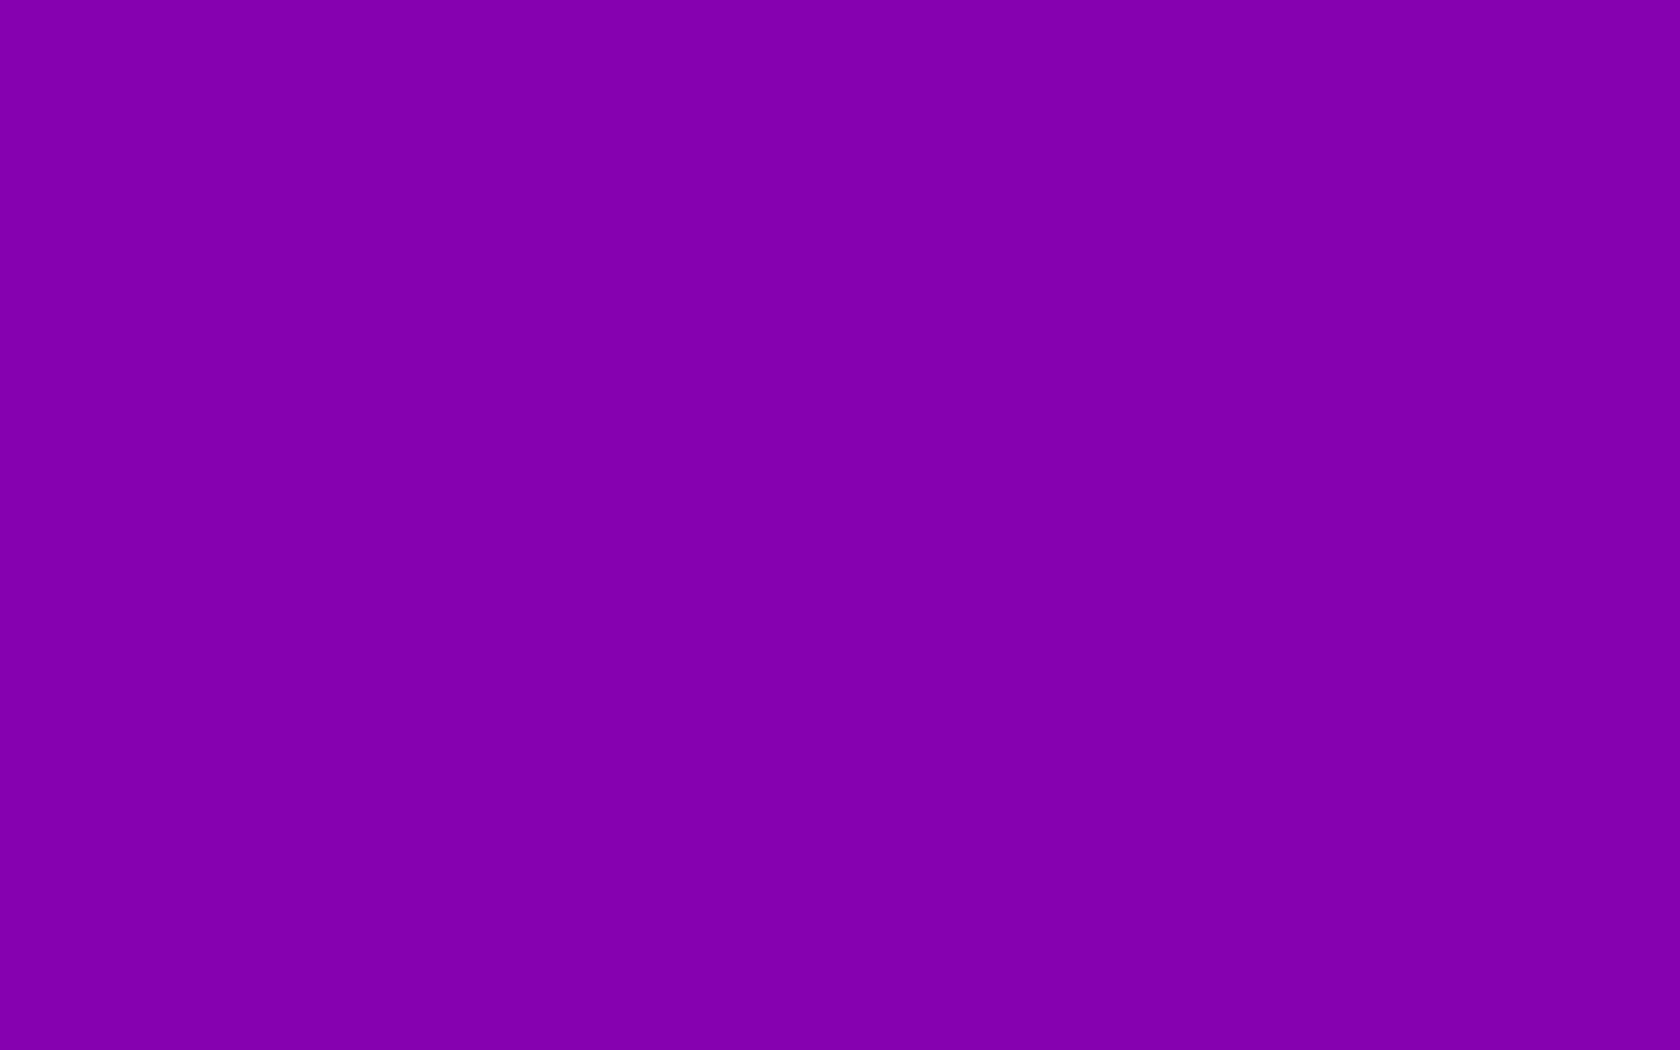 1680x1050 Violet RYB Solid Color Background